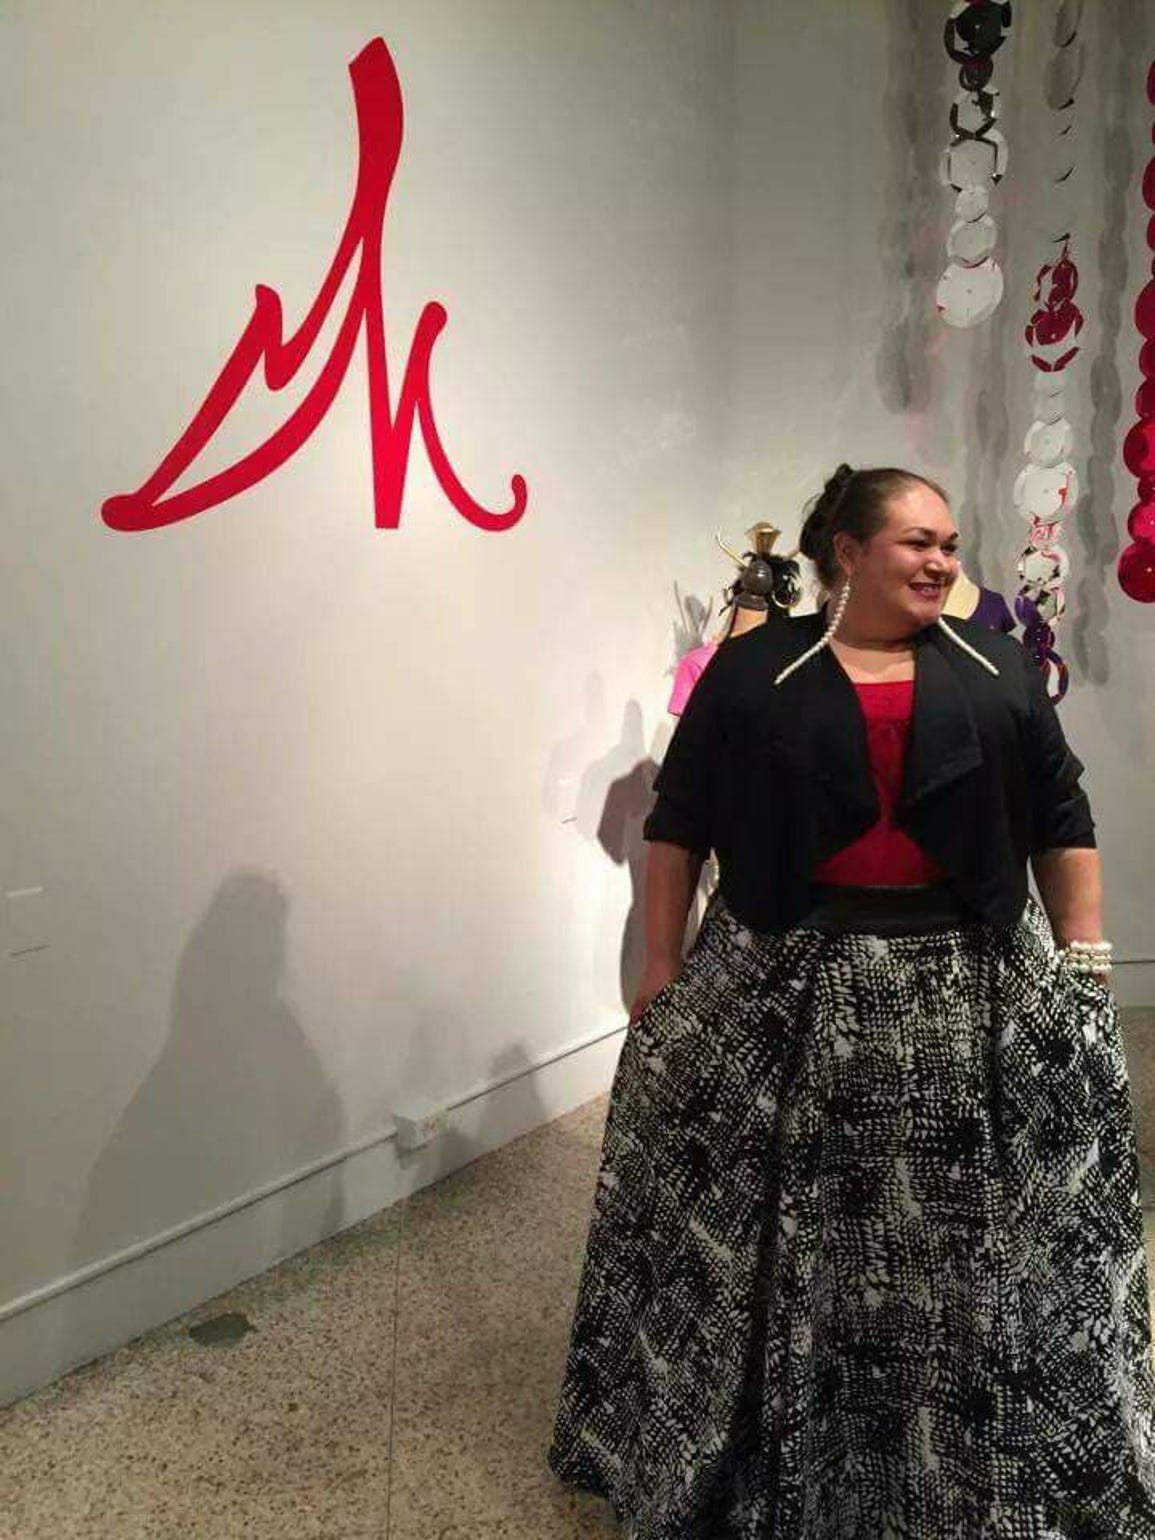 Monica Garcia, artist, educator and outreach at K Space